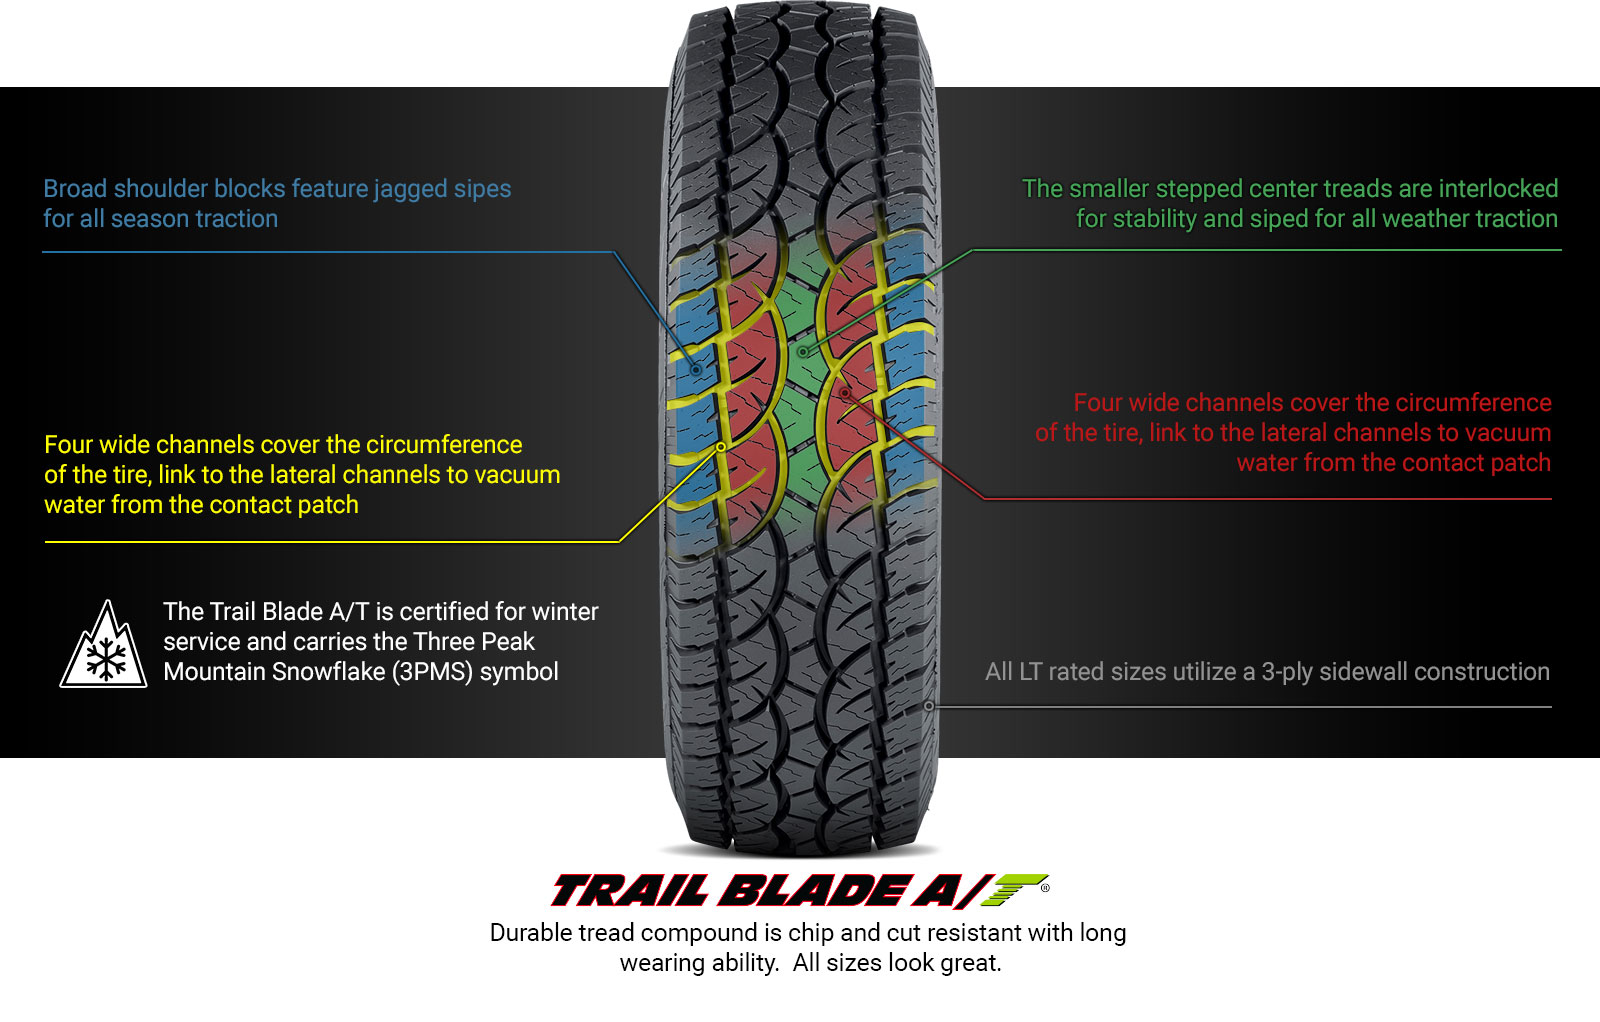 Trail Blade A/T Tire Technology